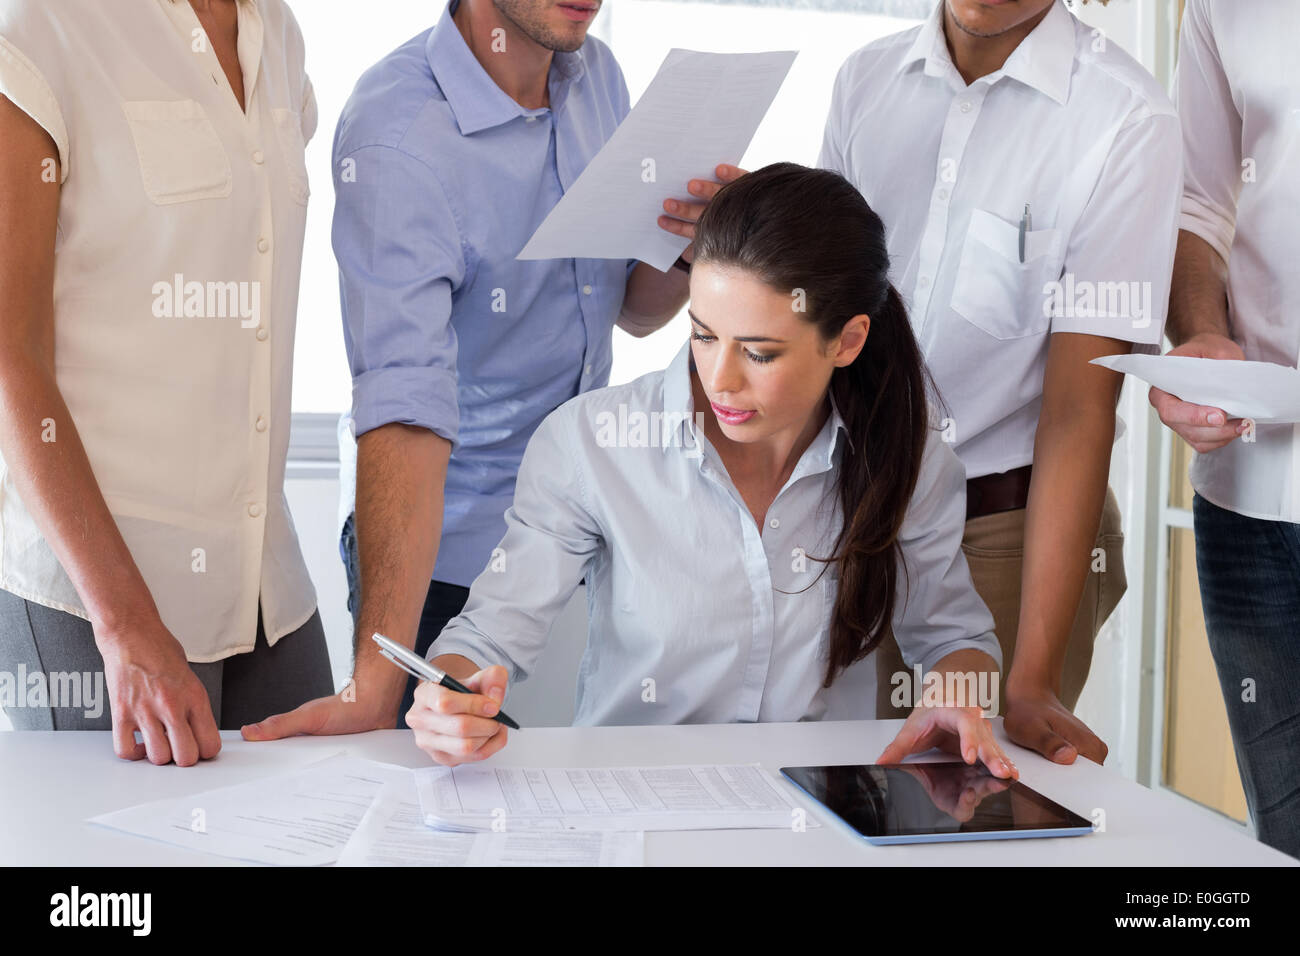 Attractive businesswoman working with businessmen - Stock Image